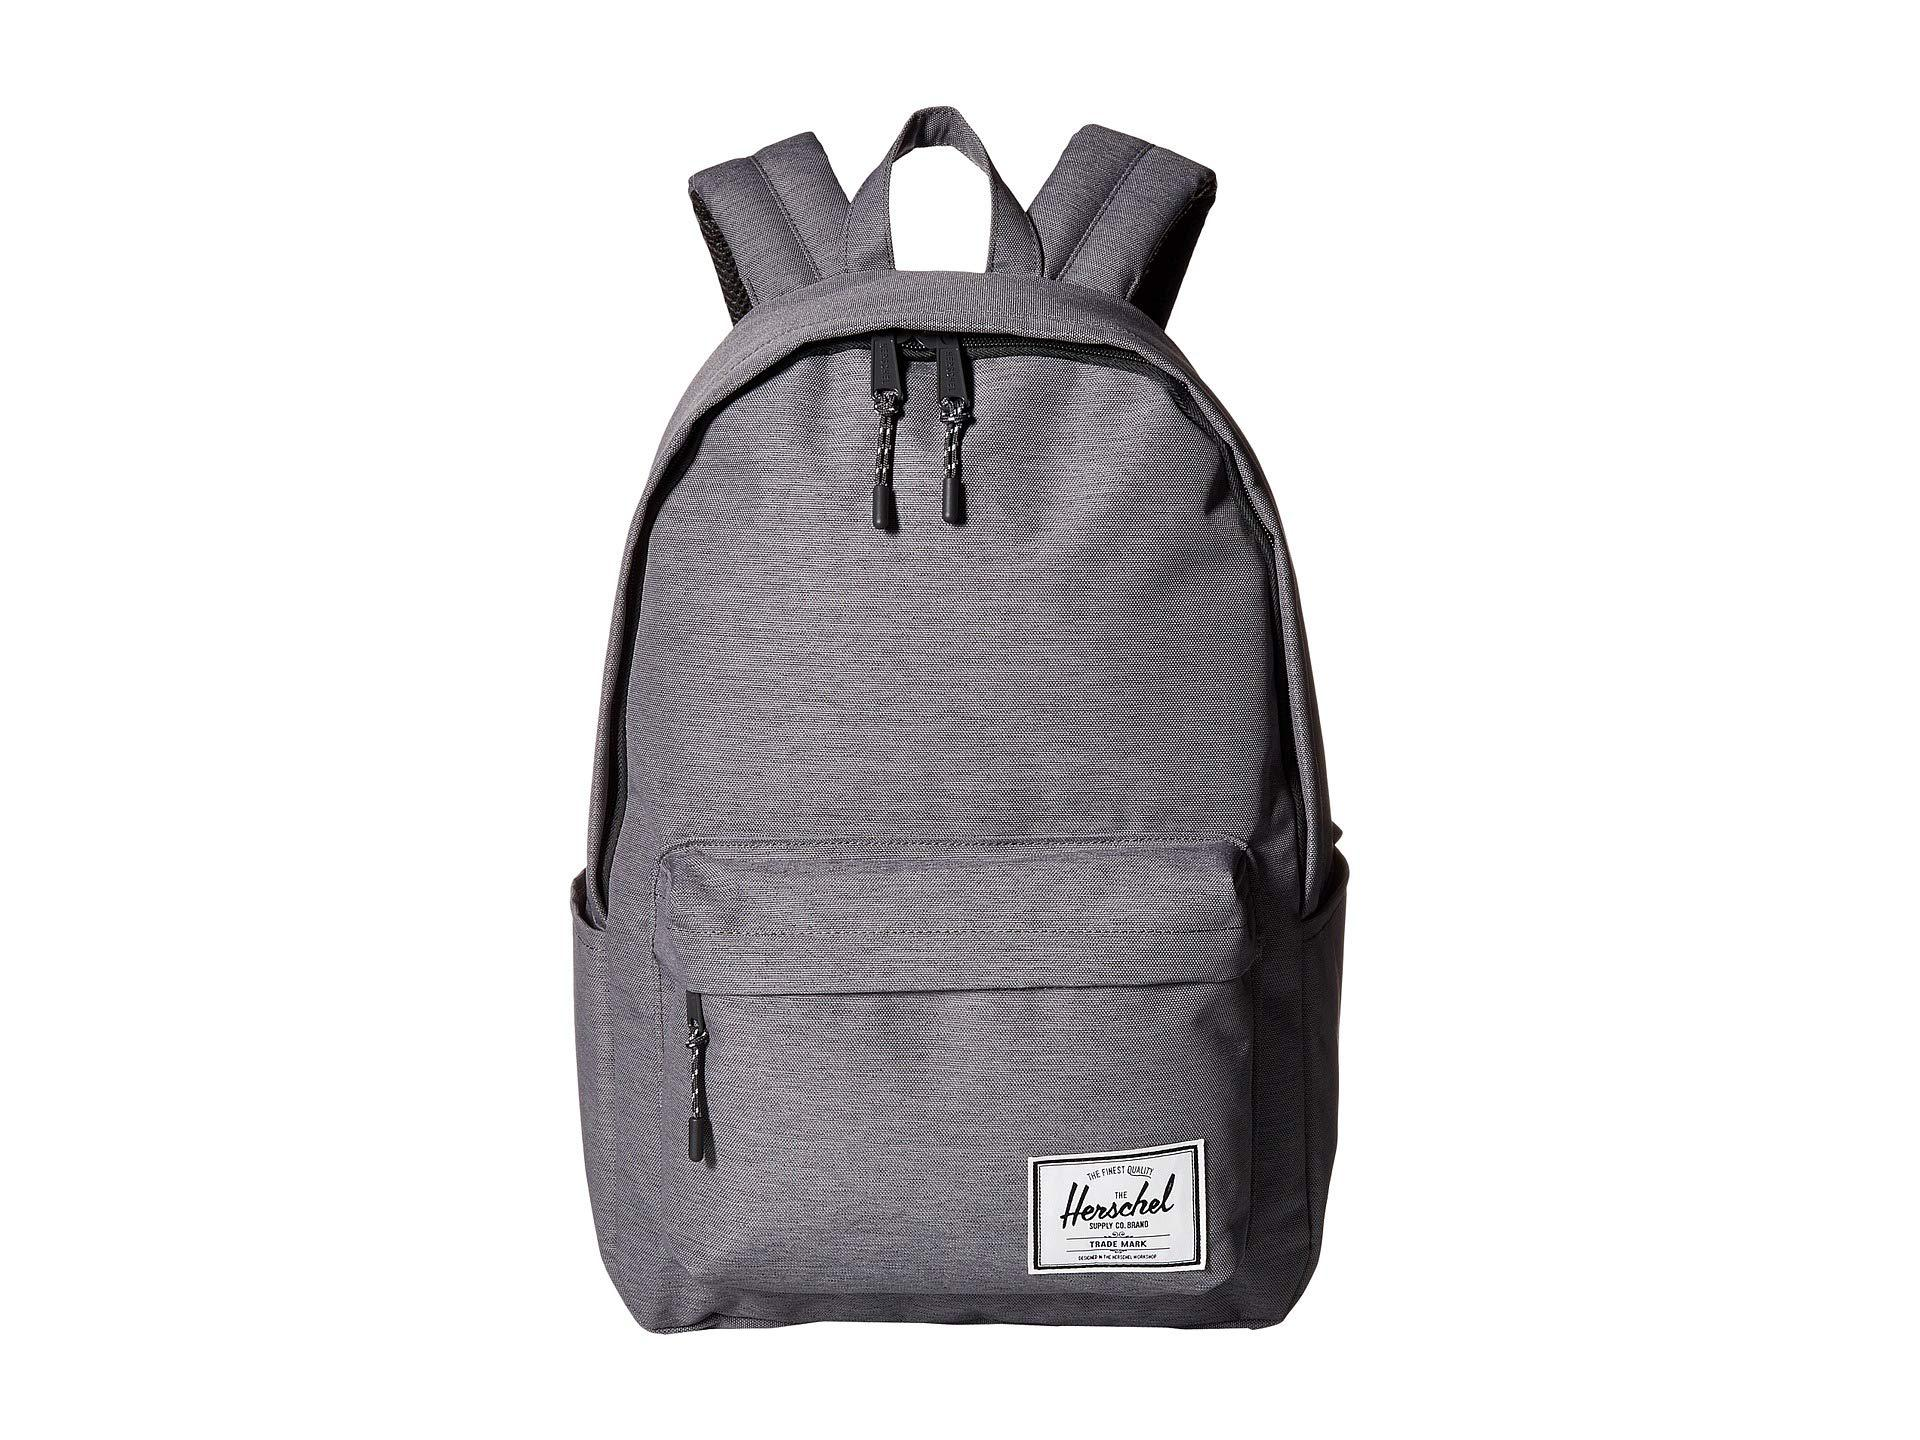 170c72c8207 Lyst - Herschel Supply Co. Classic X-large (navy) Backpack Bags in ...